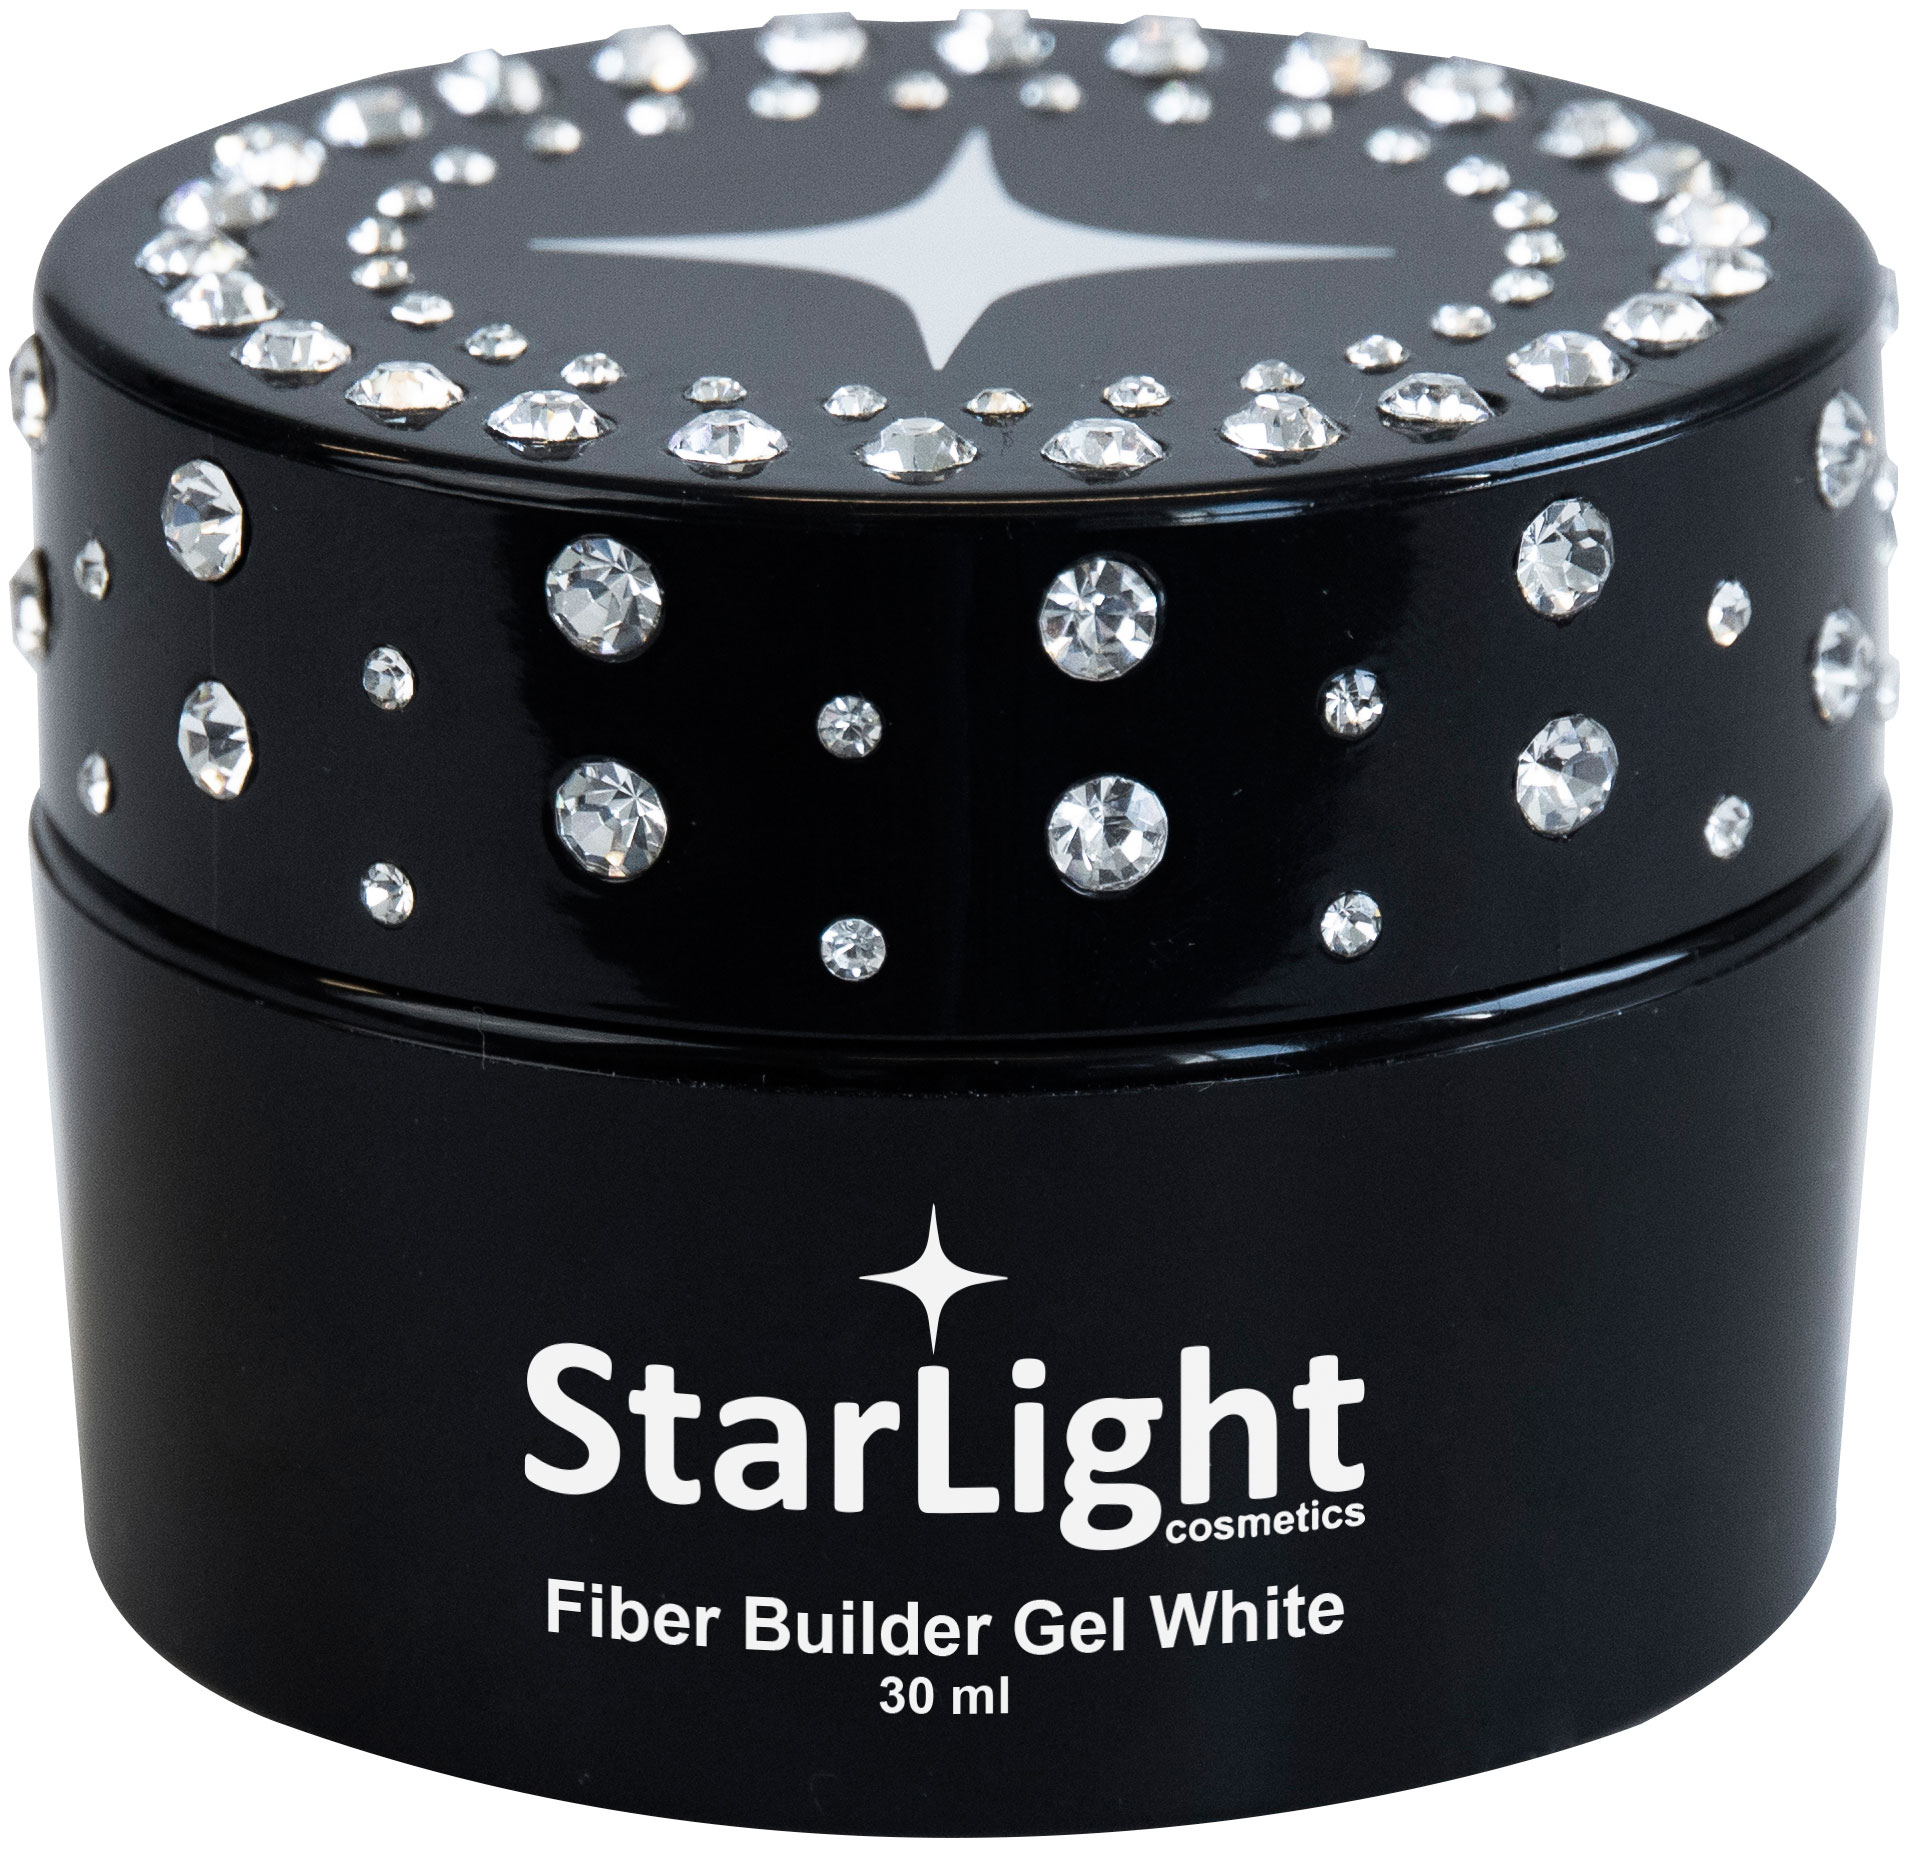 Naglar Fiber Builder Gel White - 30 ml